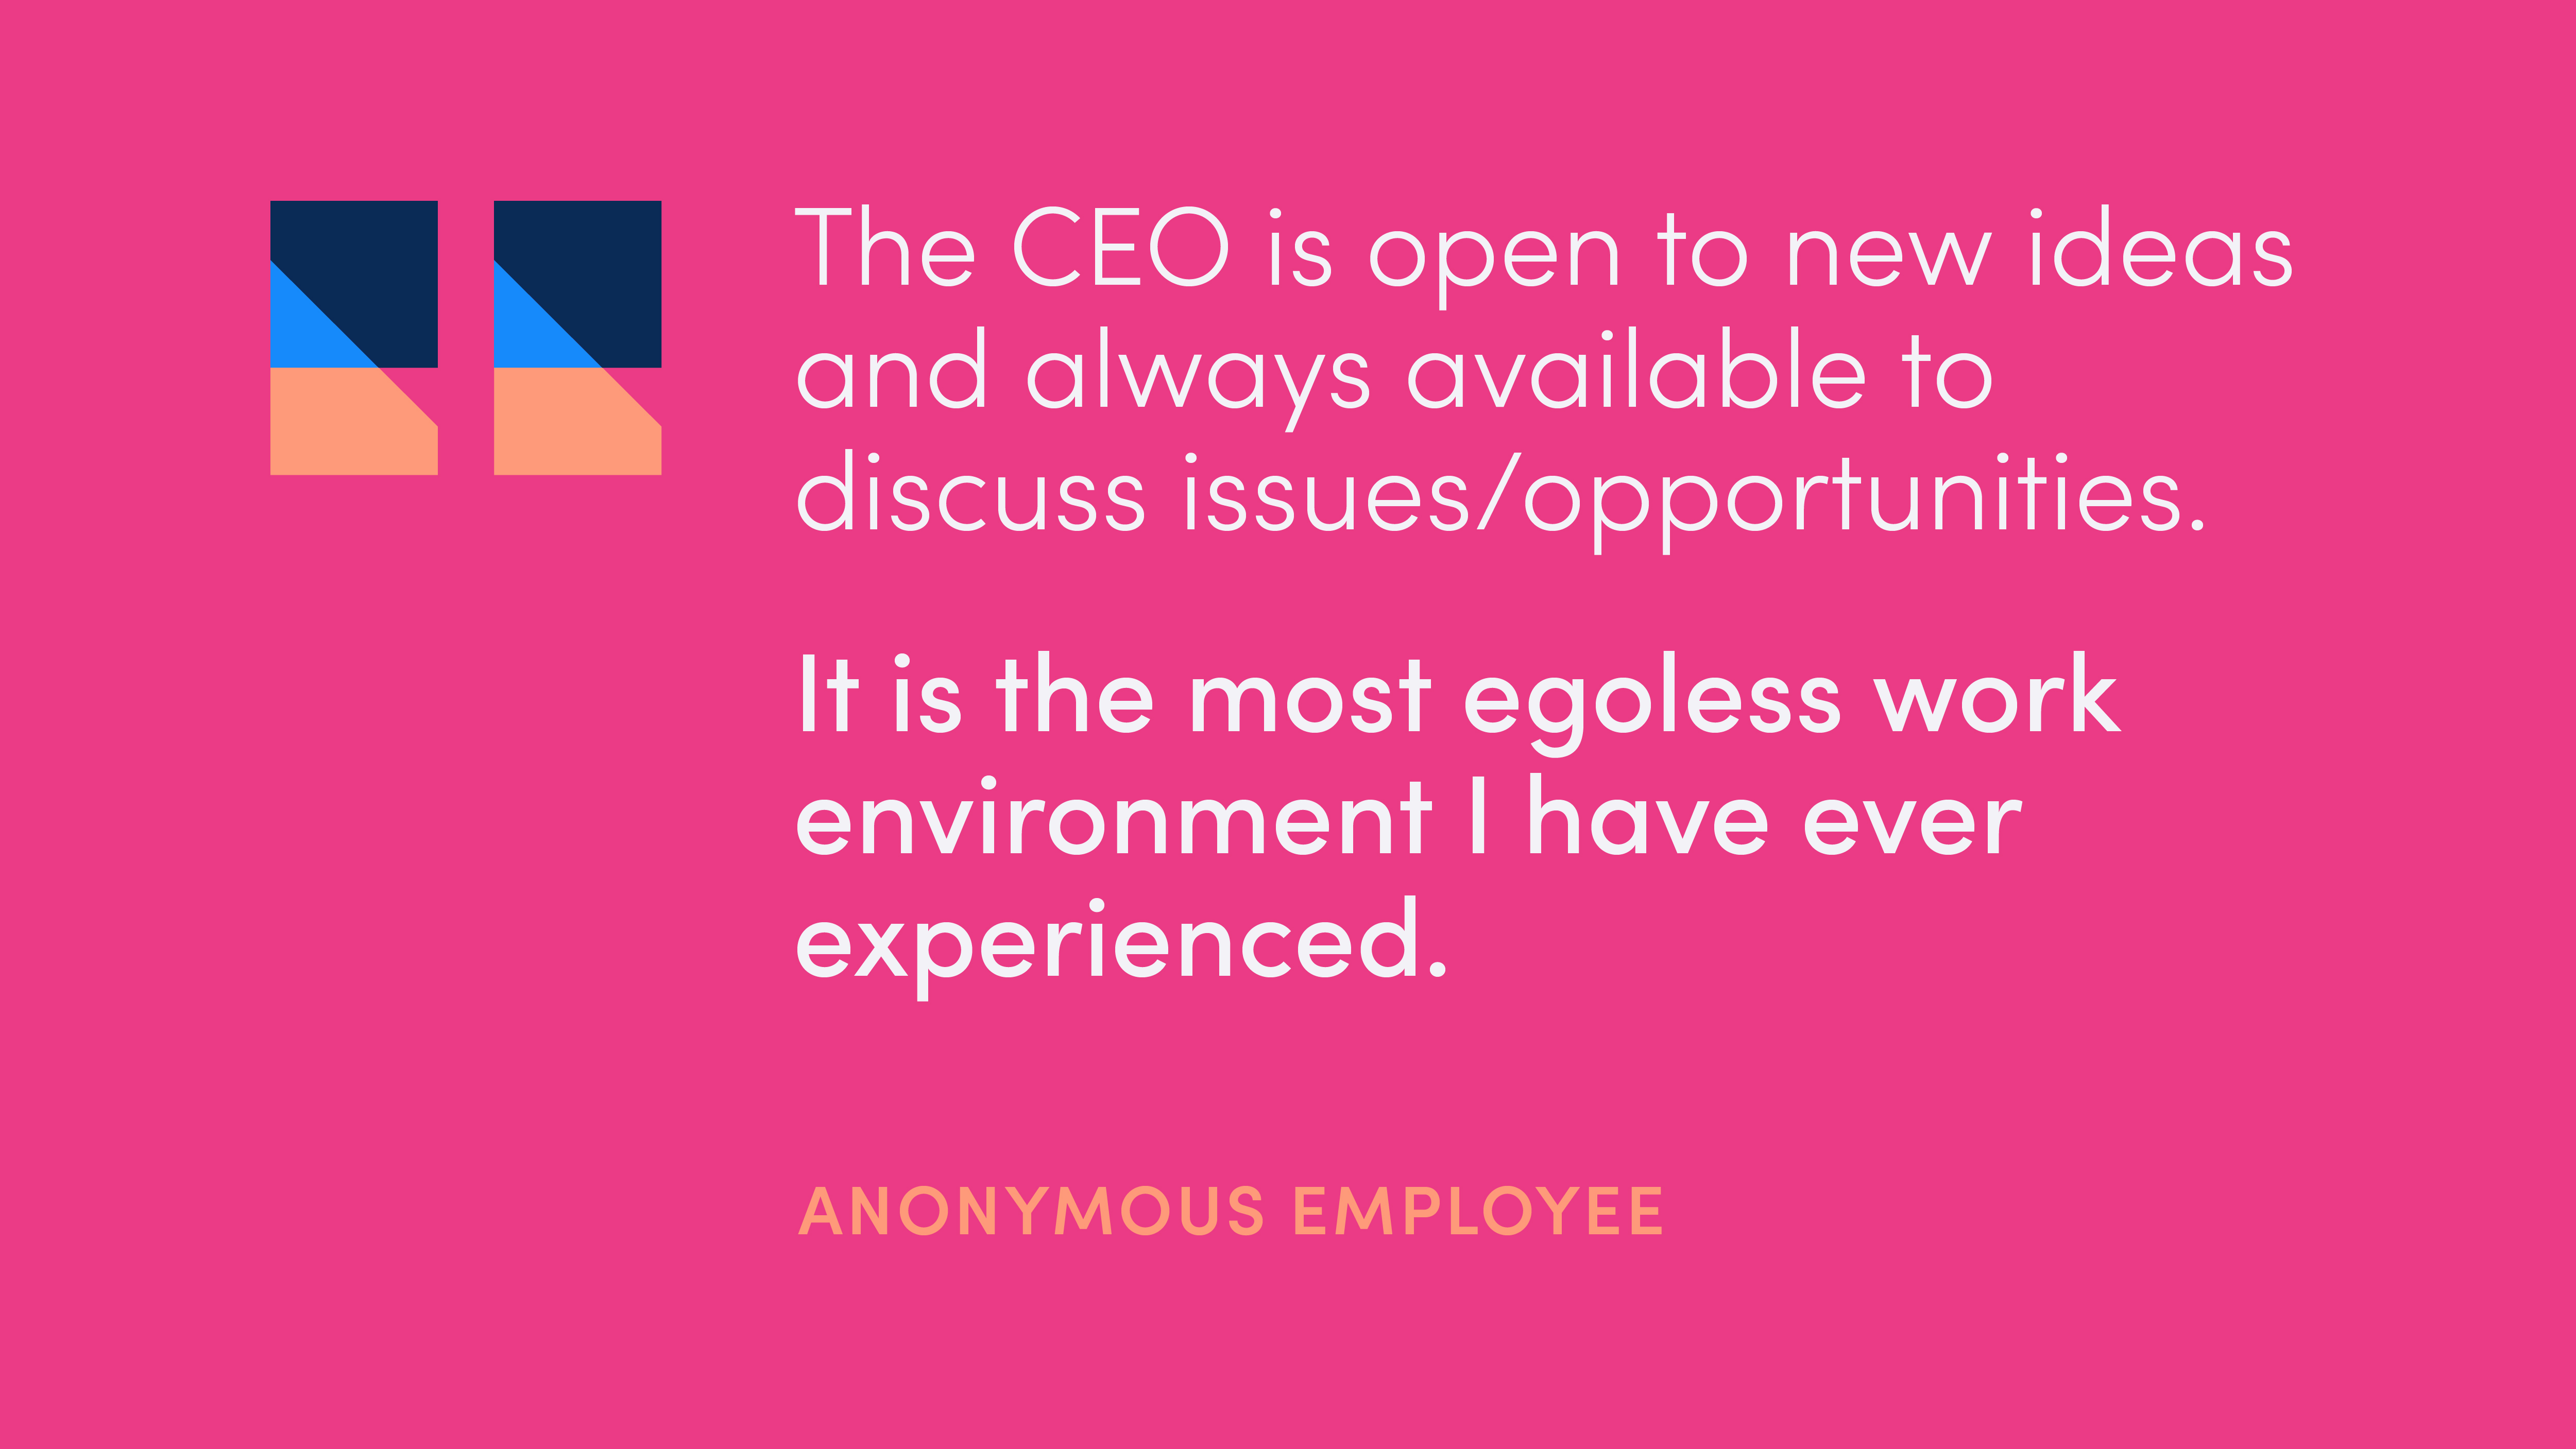 Quote from anonymous employee: